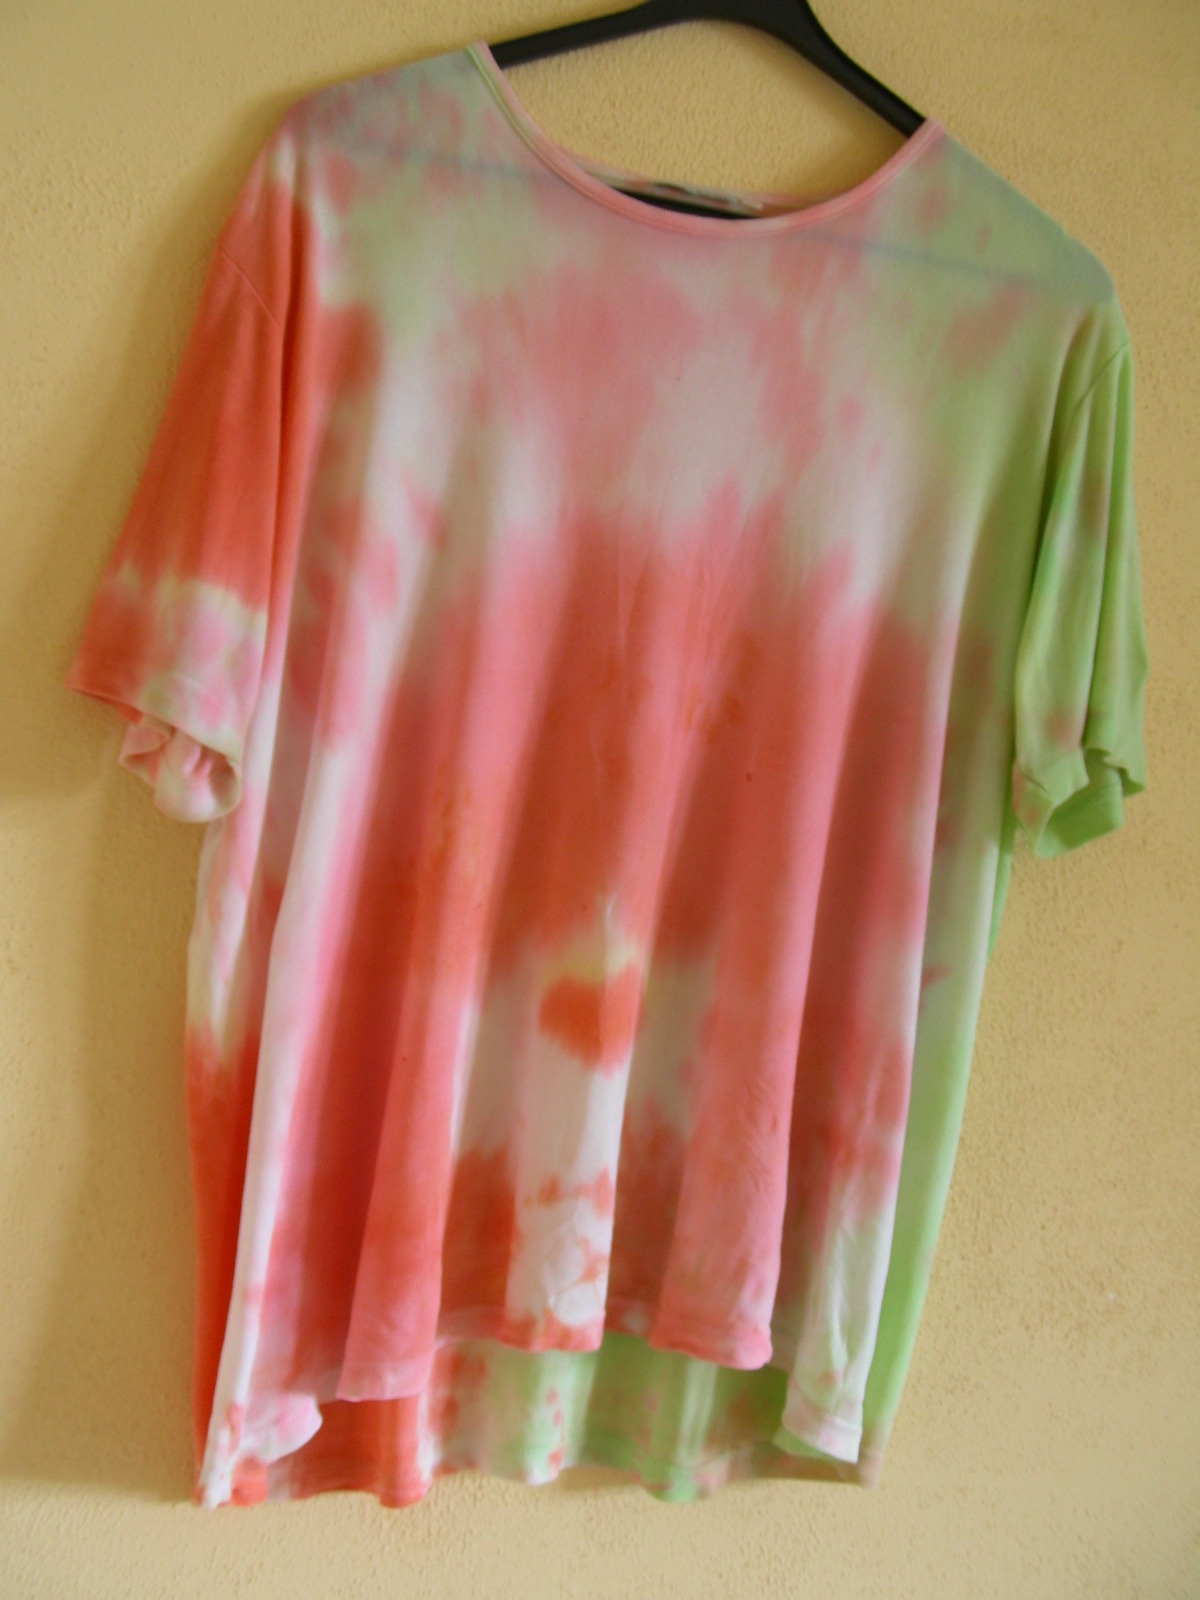 49b305053ccf Kool Aid Tie Dyed T-Shirts Recipe - Genius Kitchen